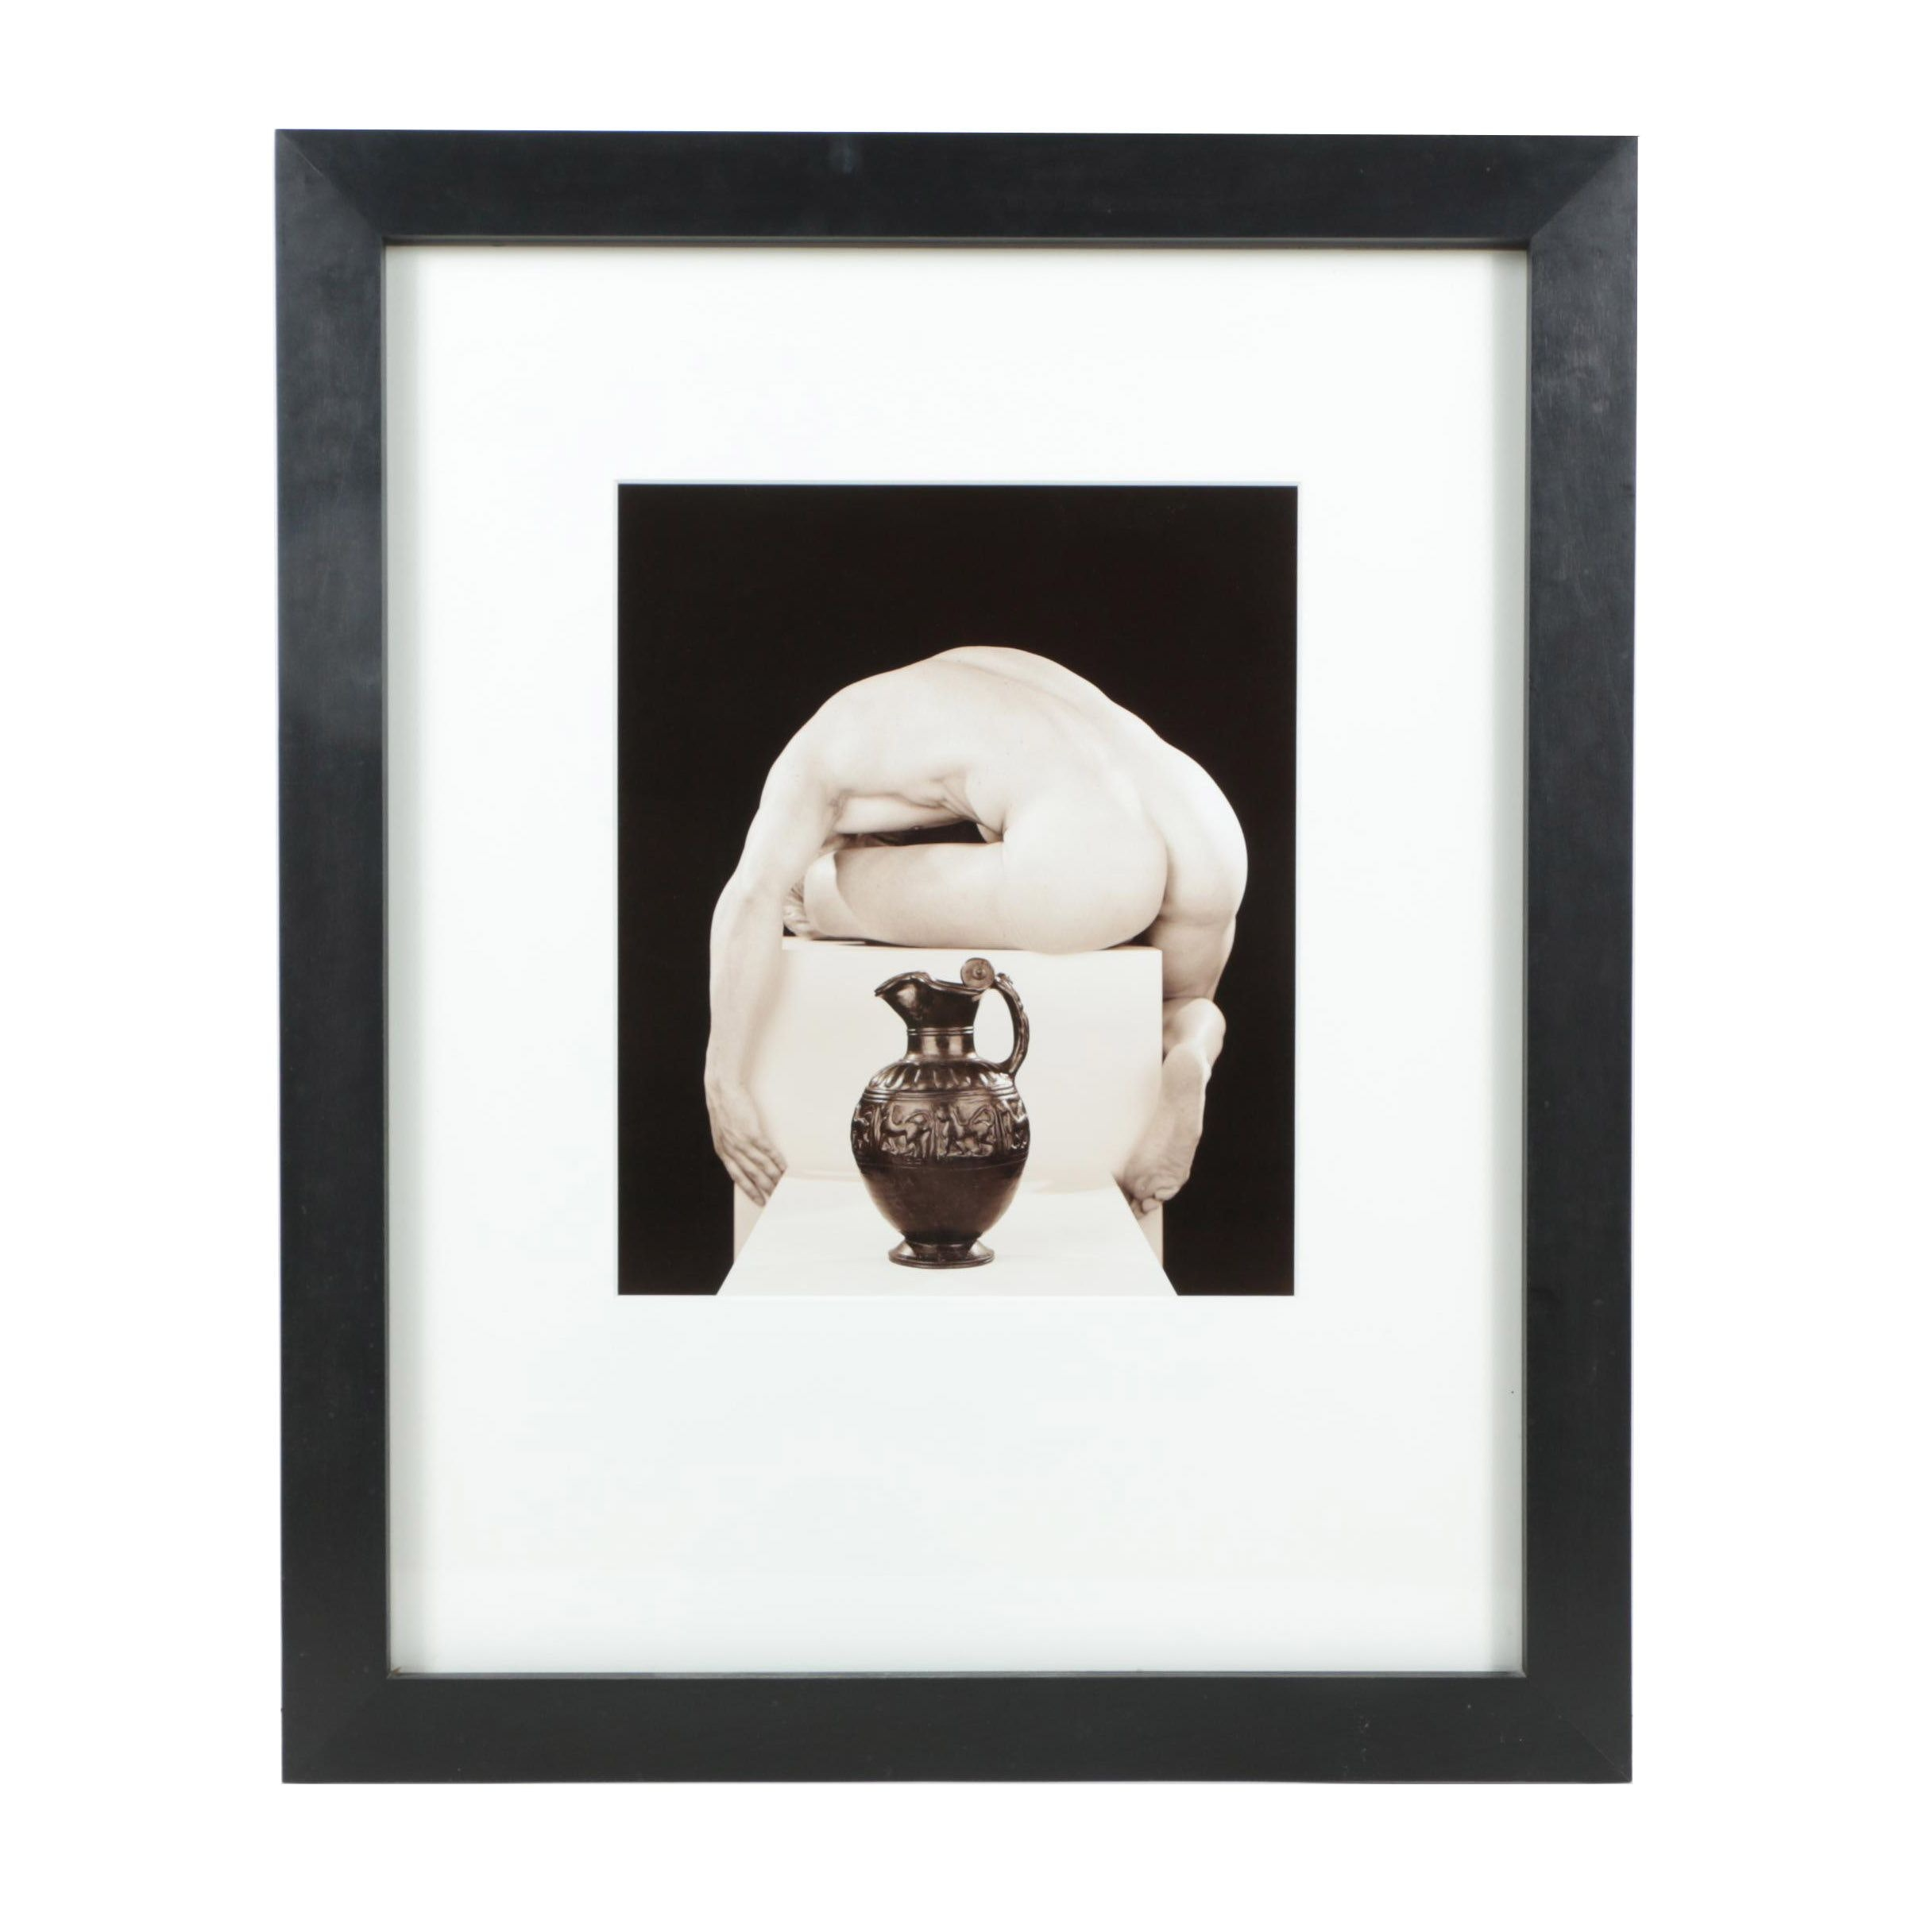 Len Prince Gelatin-Silver Photograph Contorted Male Nude Figure With Vase